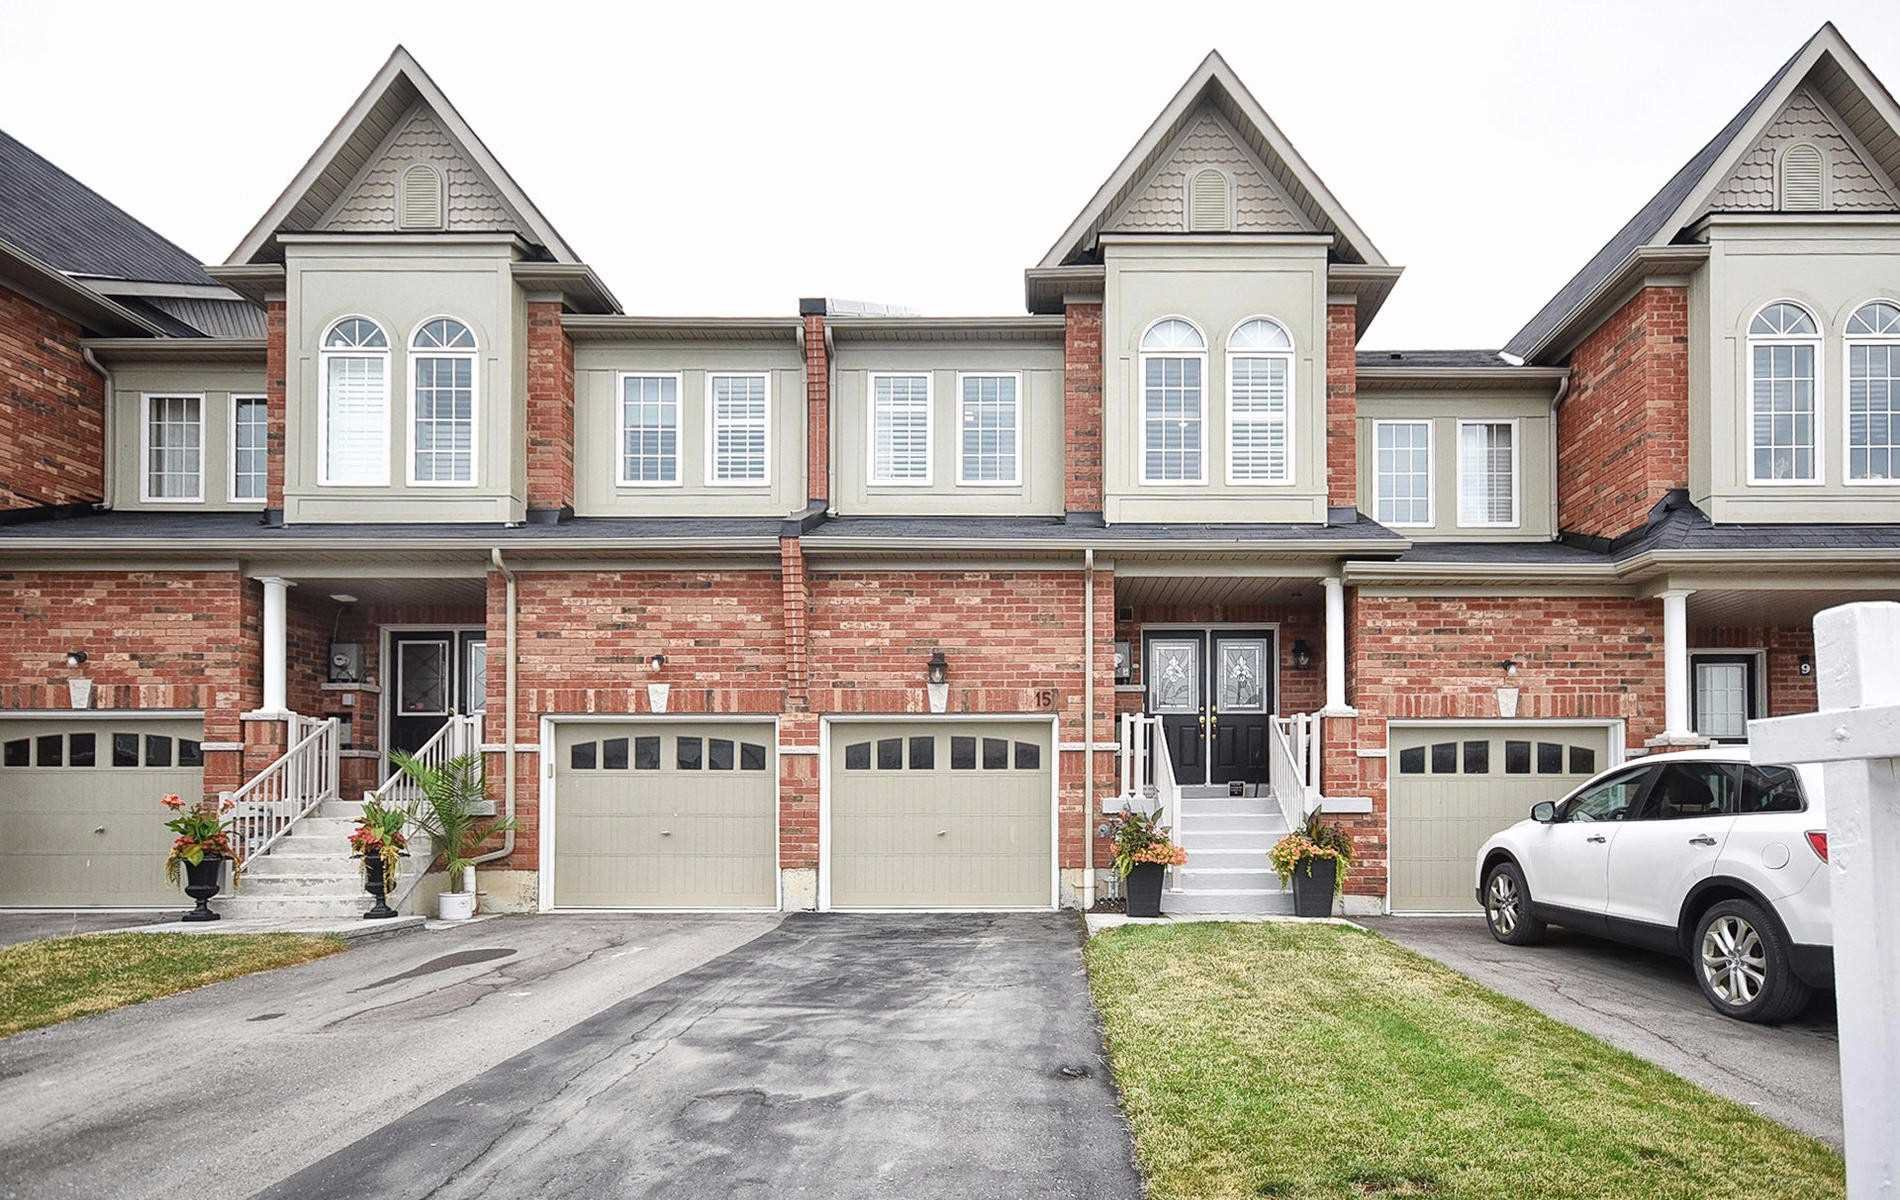 Main Photo: 15 Clarinet Lane in Whitchurch-Stouffville: Stouffville House (2-Storey) for sale : MLS®# N4833156